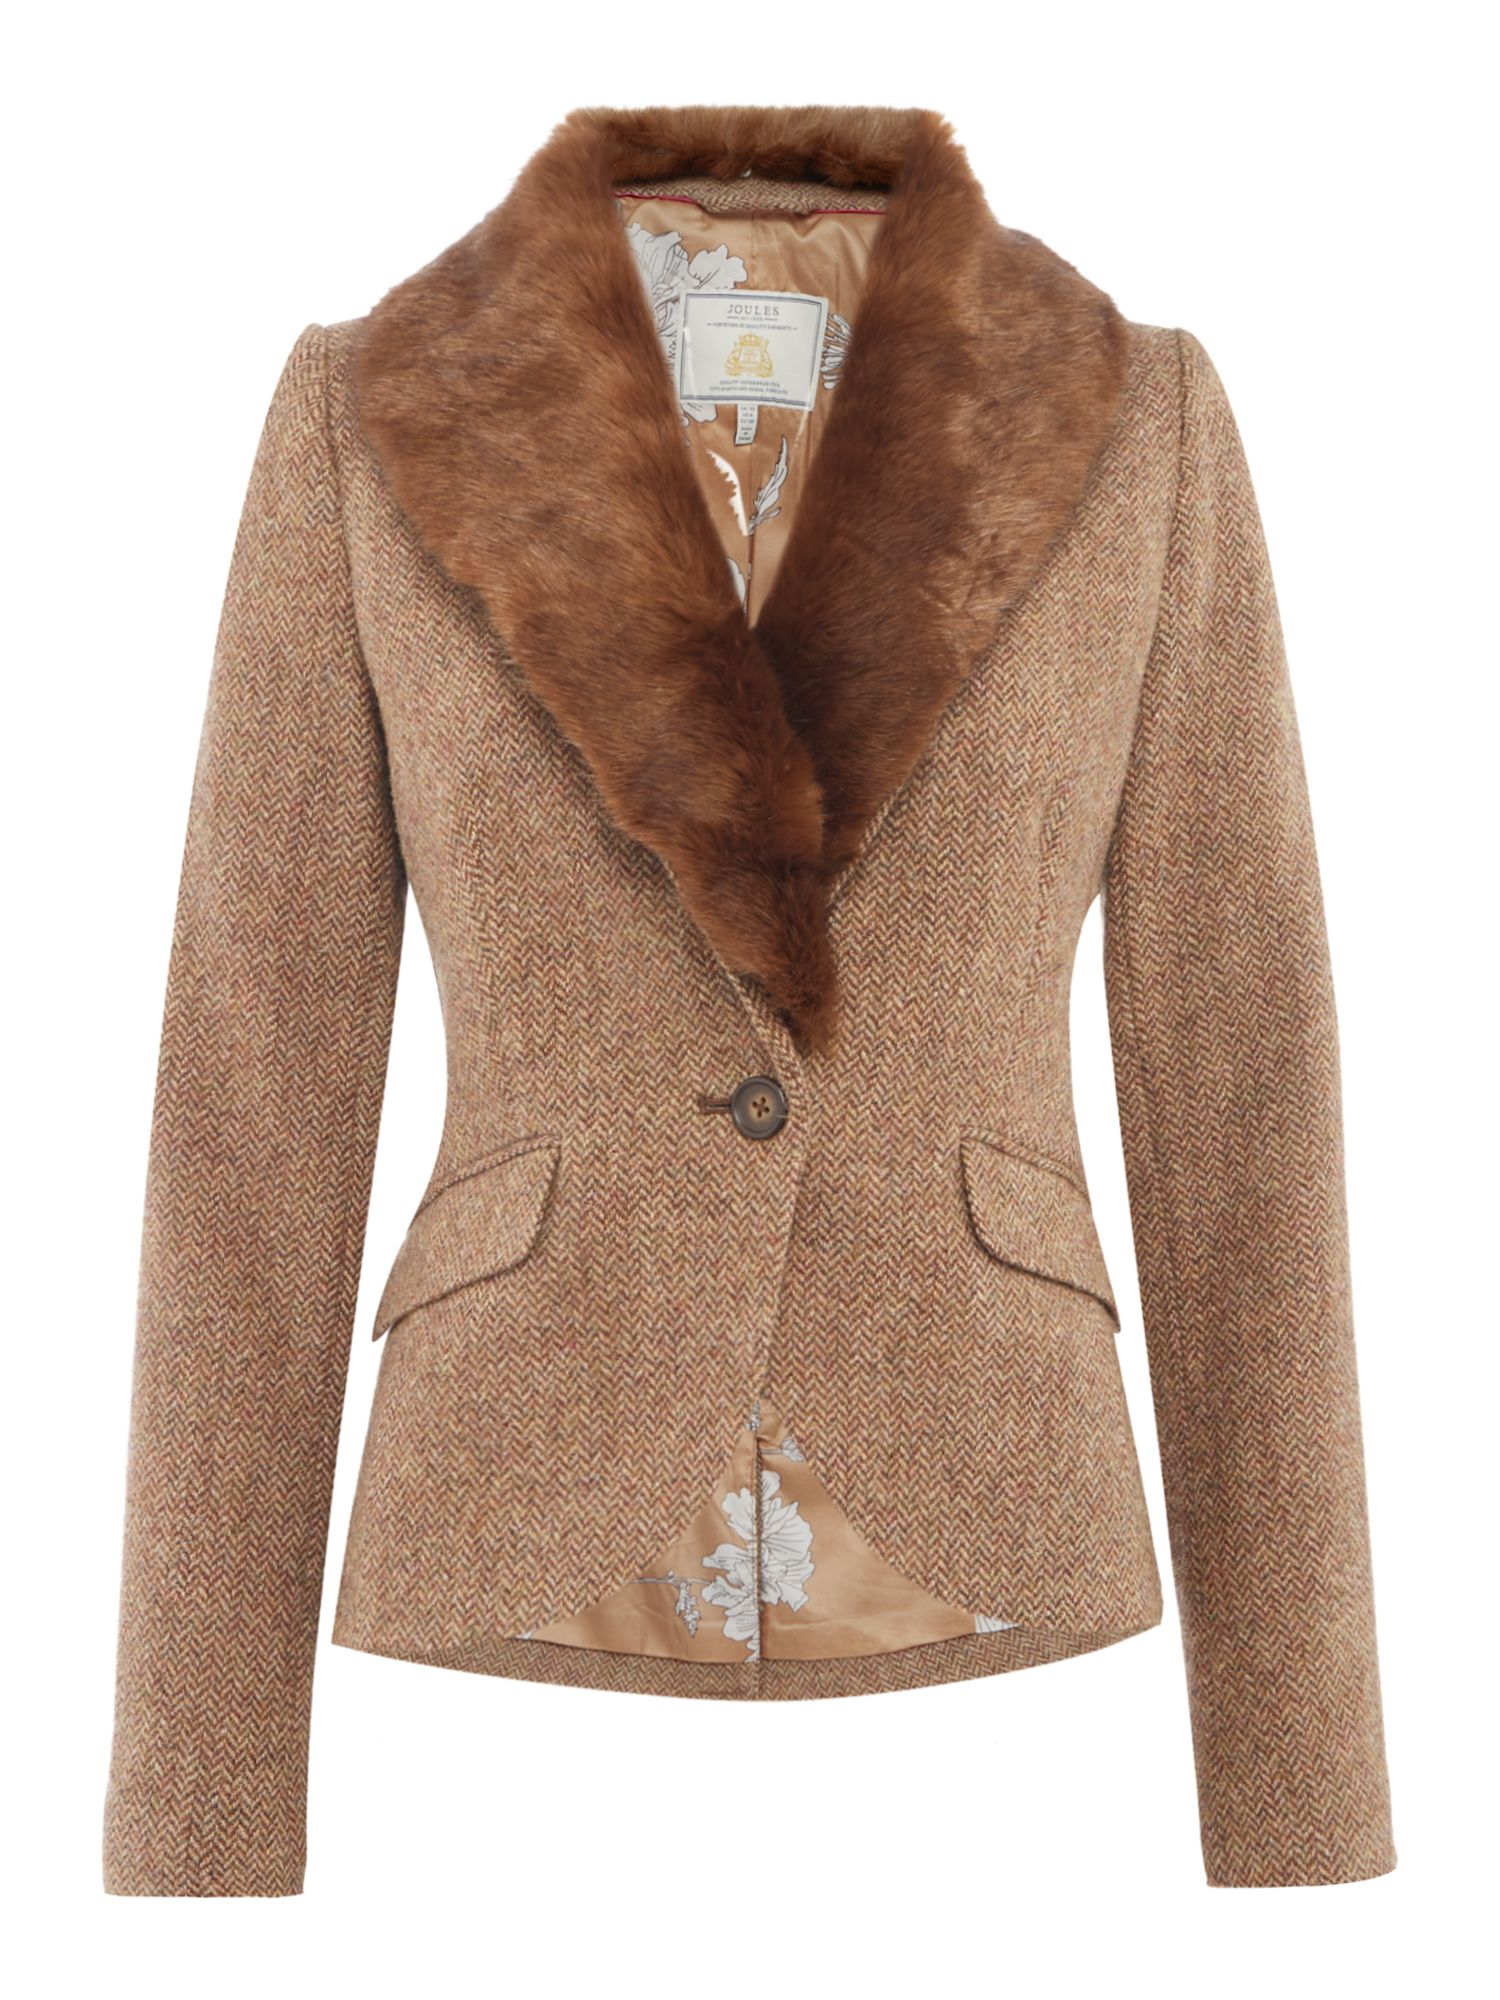 Joules Wilomena Tweed Jacket with Faux Fur Collar, Camel